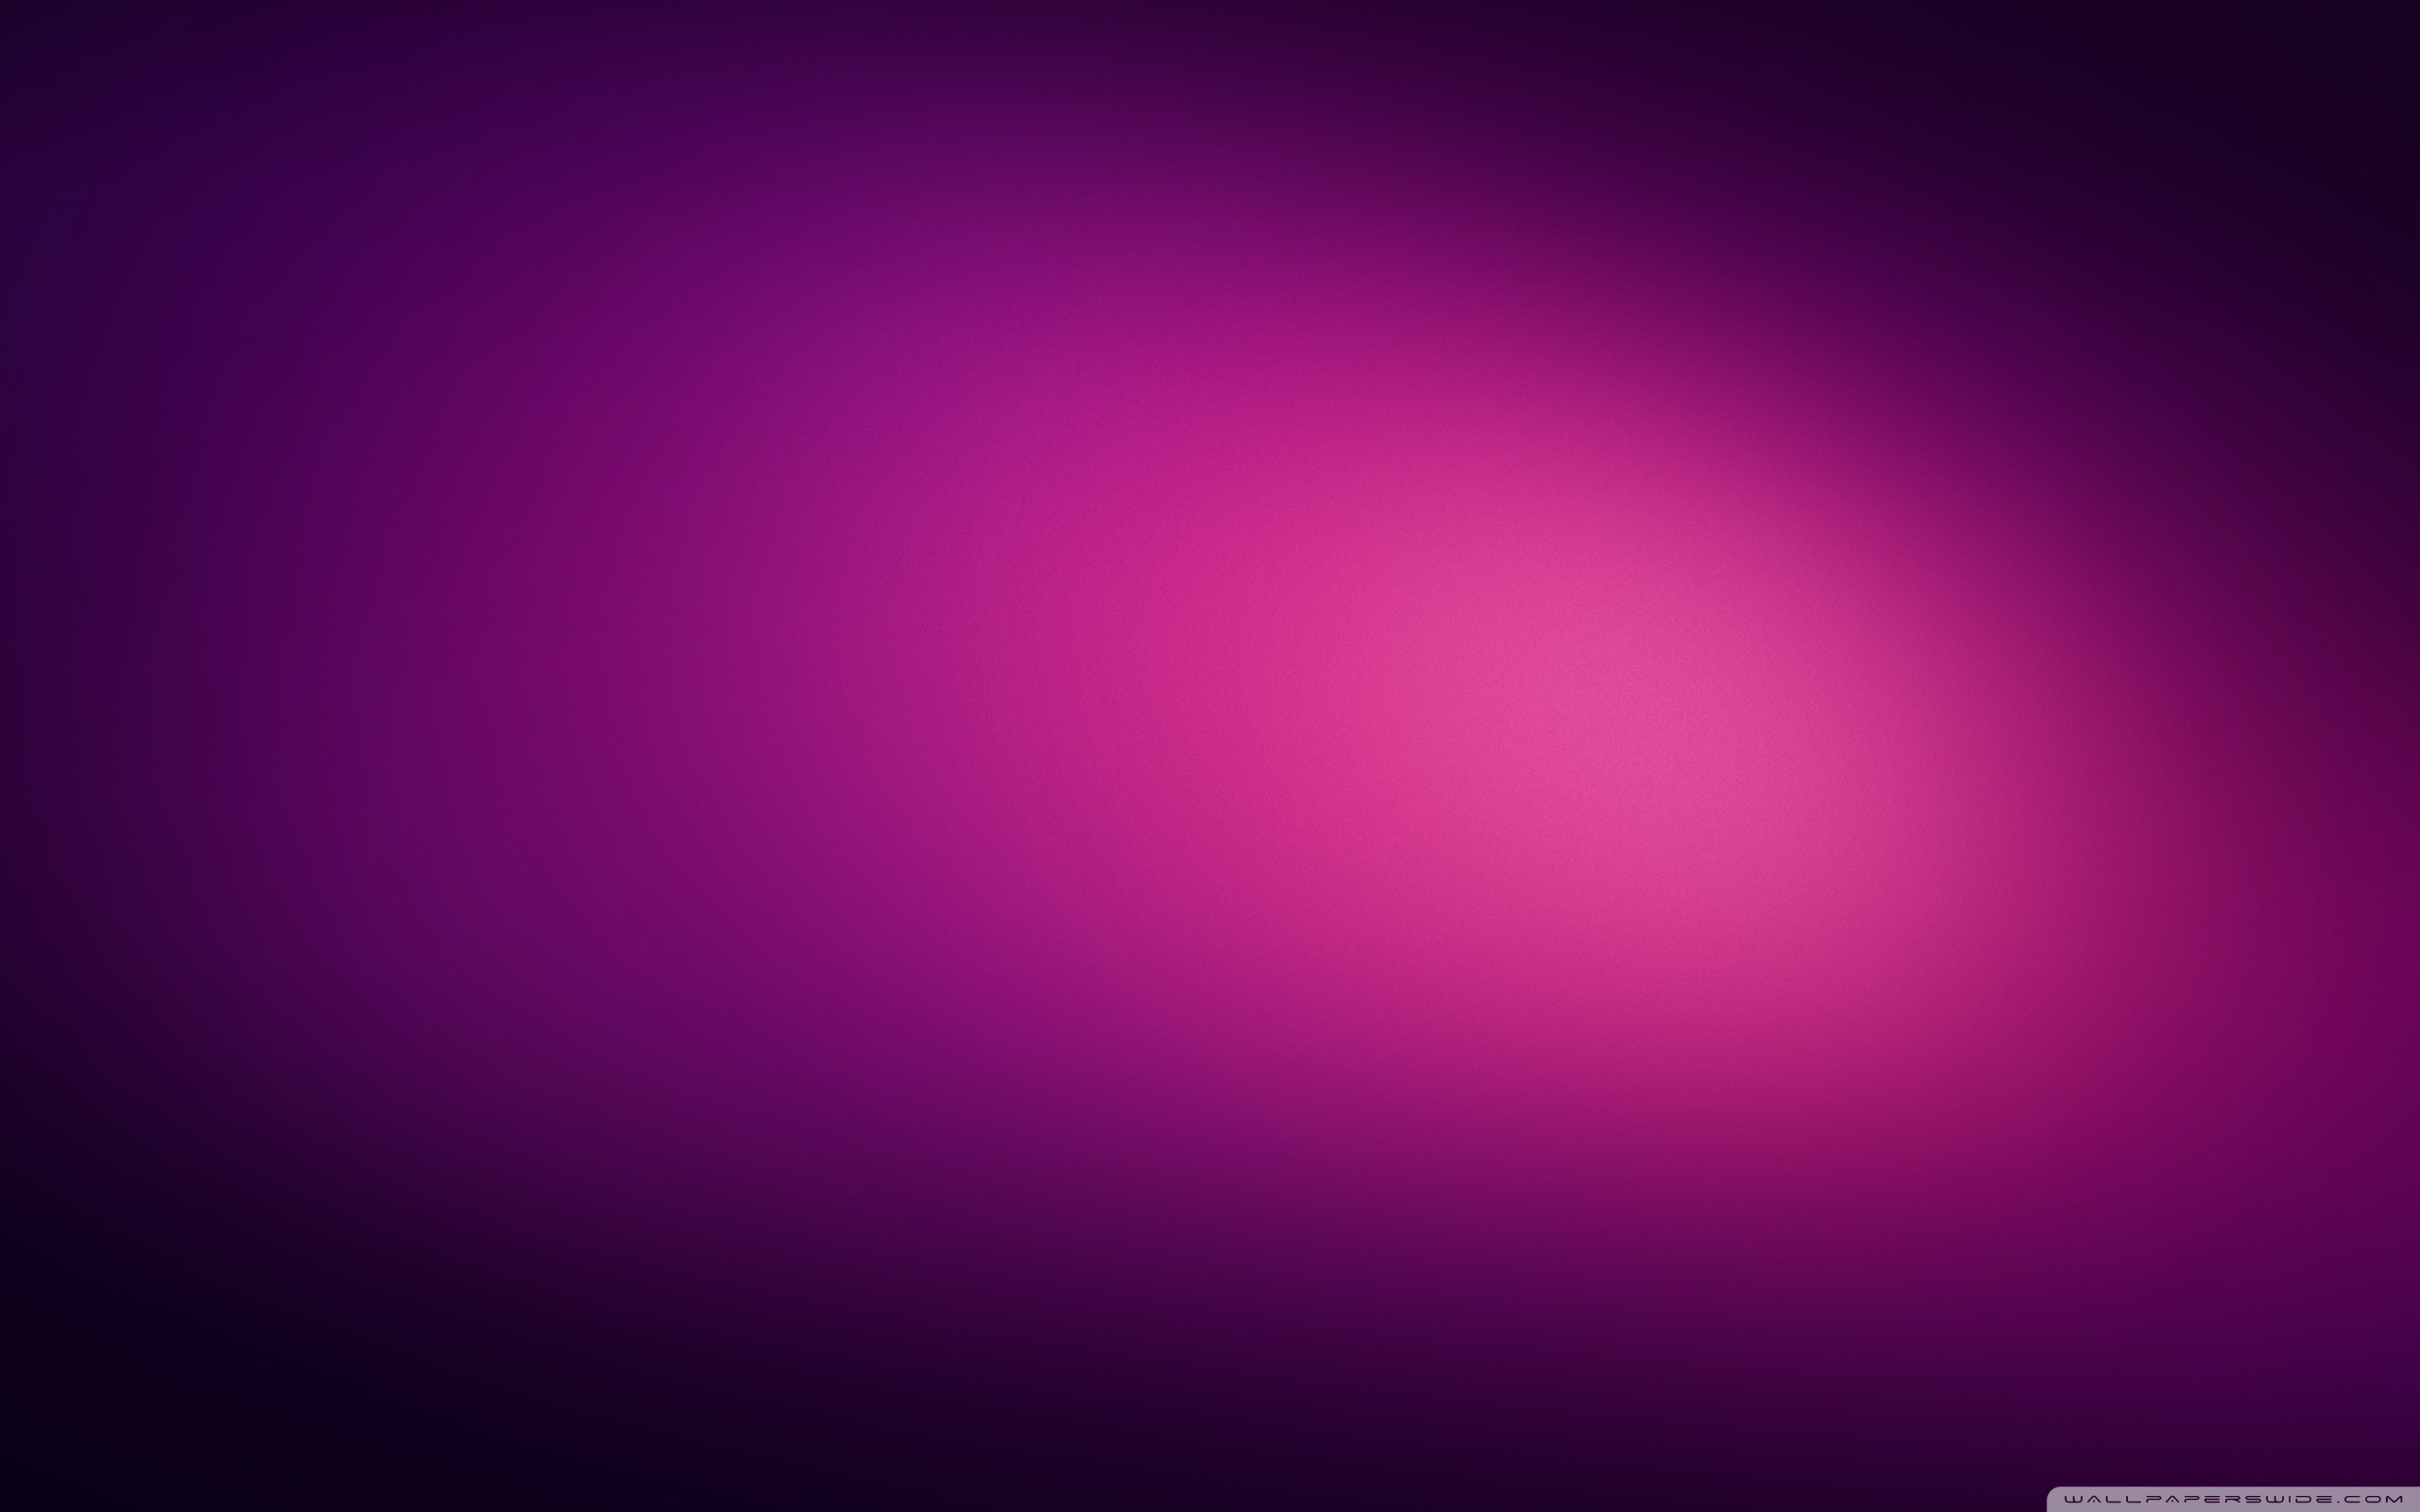 Res: 2560x1600, Violet Wallpapers 3 - 2560 X 1600